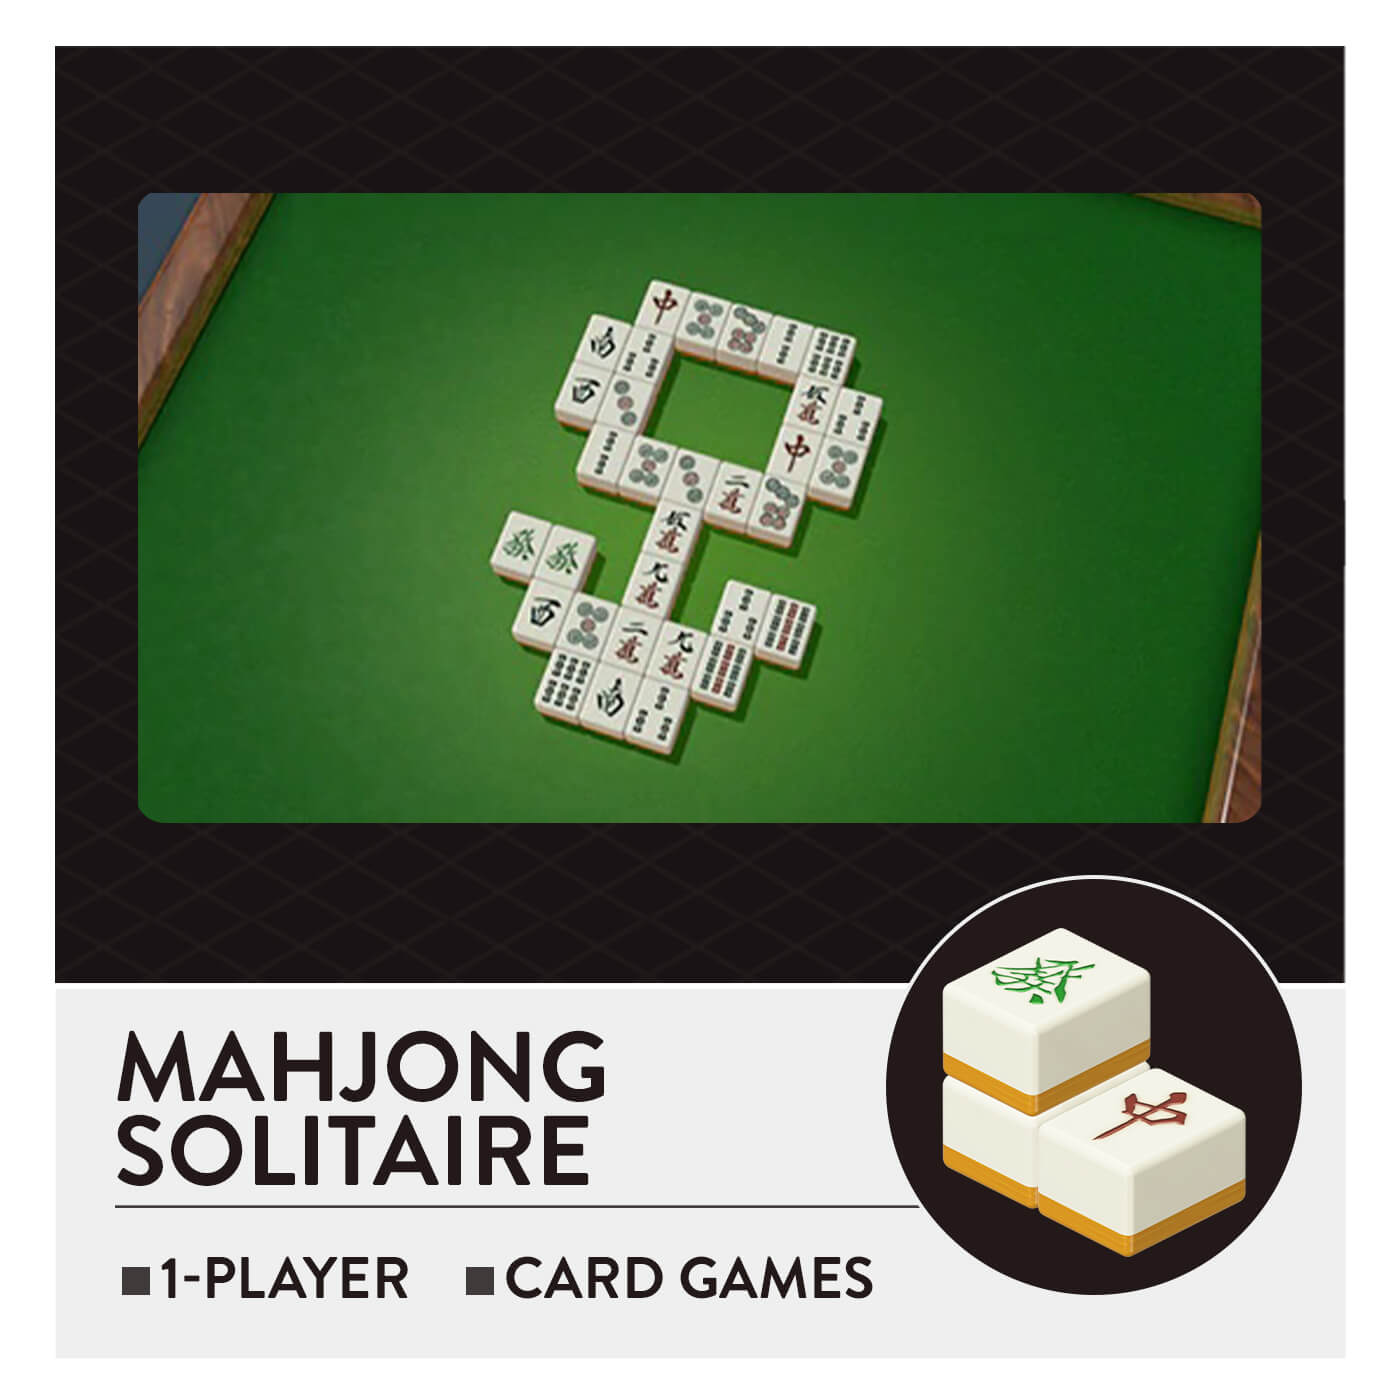 51 Worldwide Games - Mahjong Solitaire